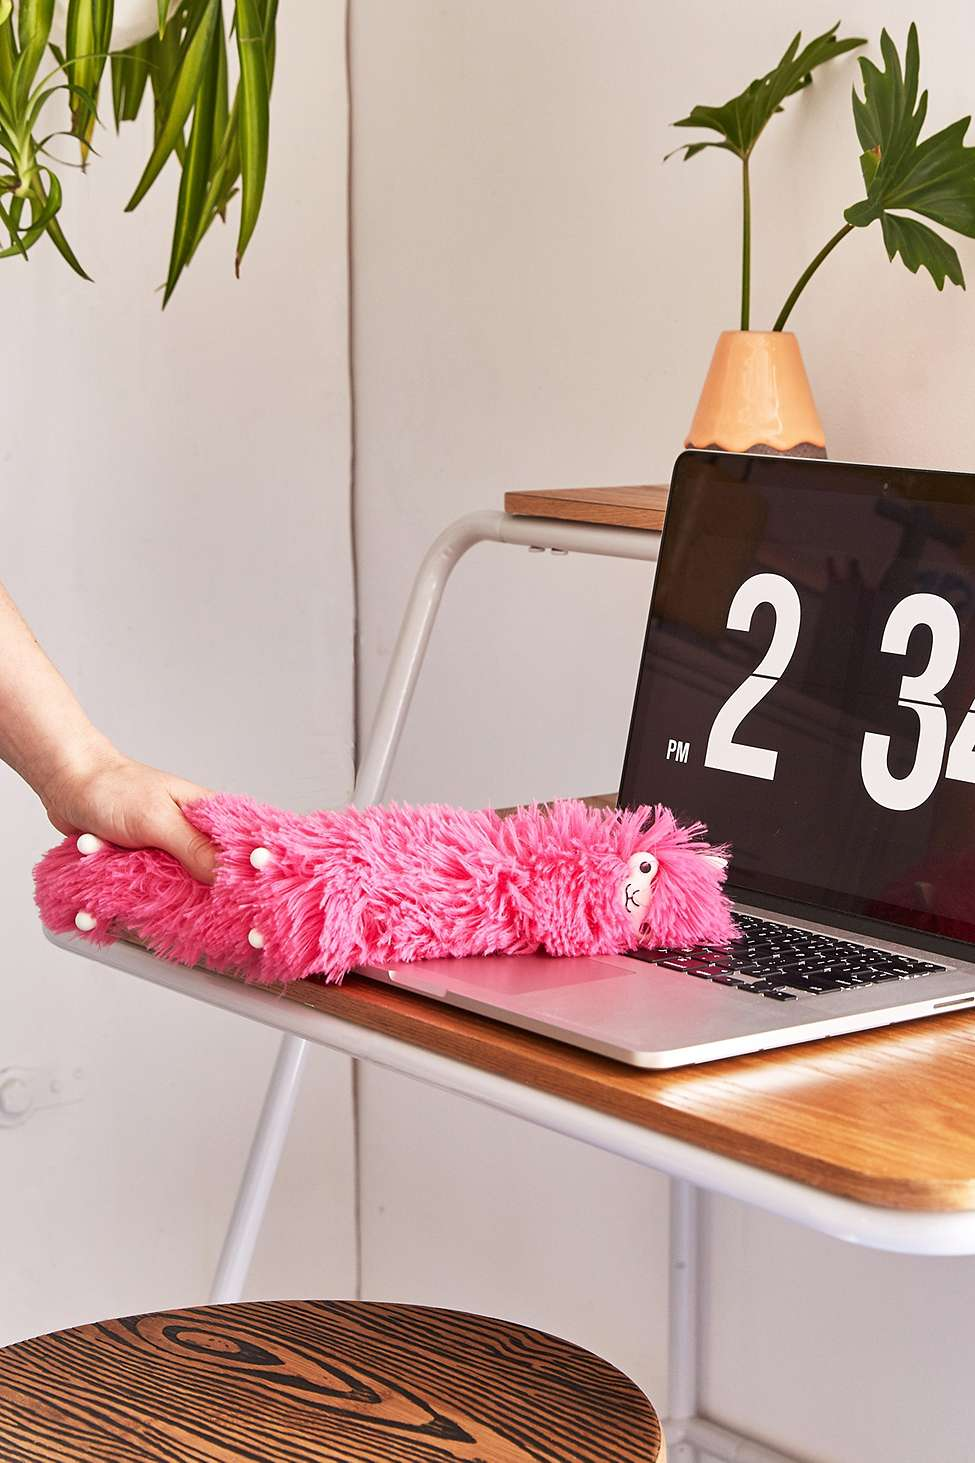 Slide View: 2: Llama Desk Duster